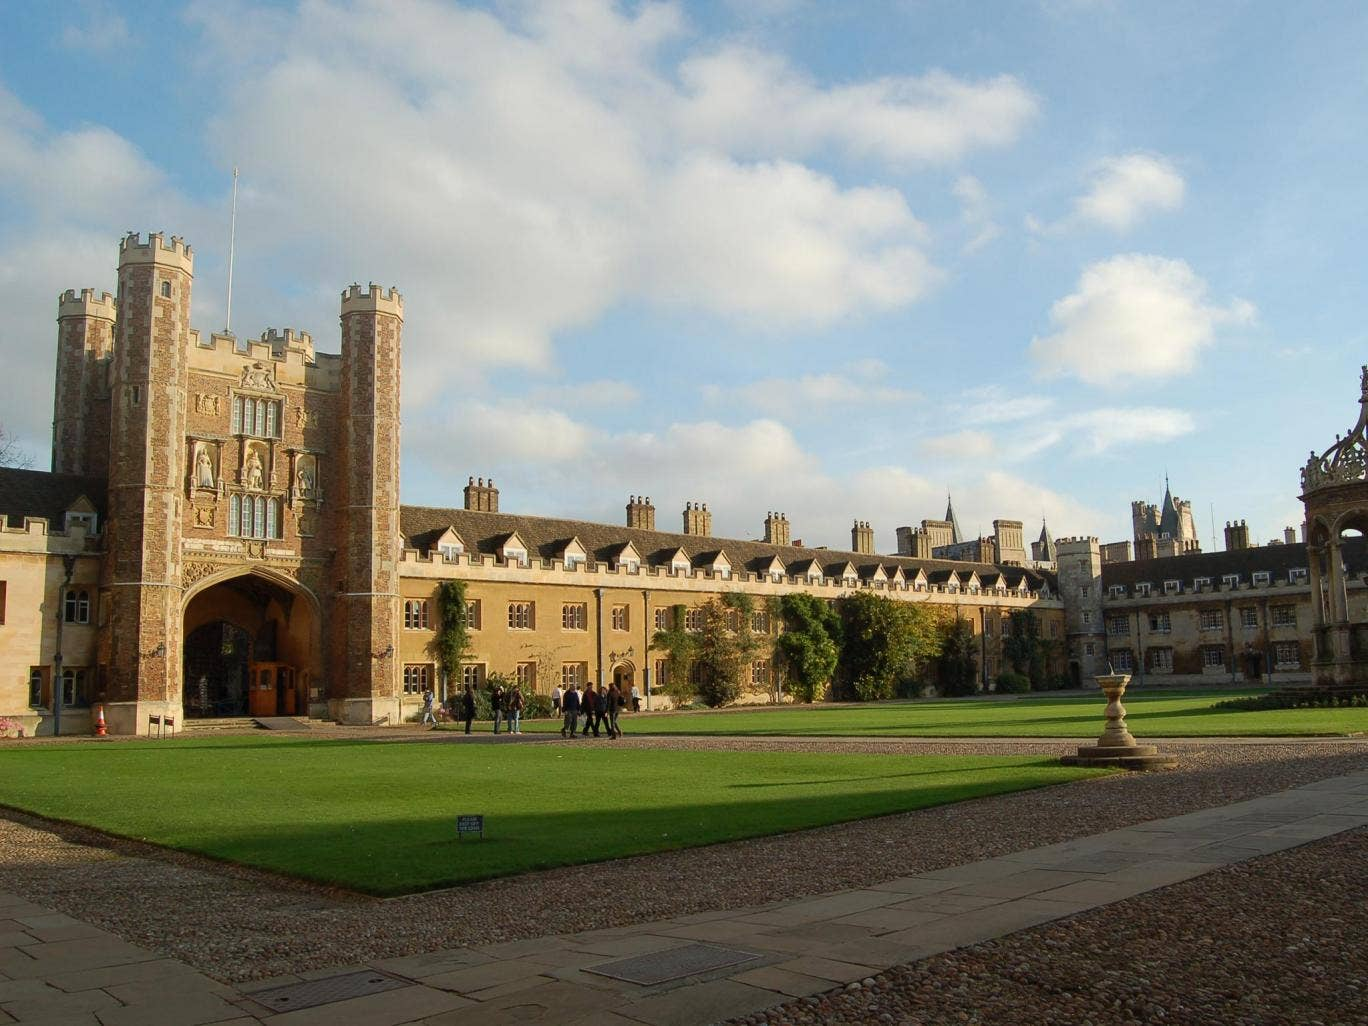 3. Cambridge University: The UK's highest ranking university. It grew out of an association of scholars - who were refugees from Oxford after falling out with local townsfolk - in 1209.